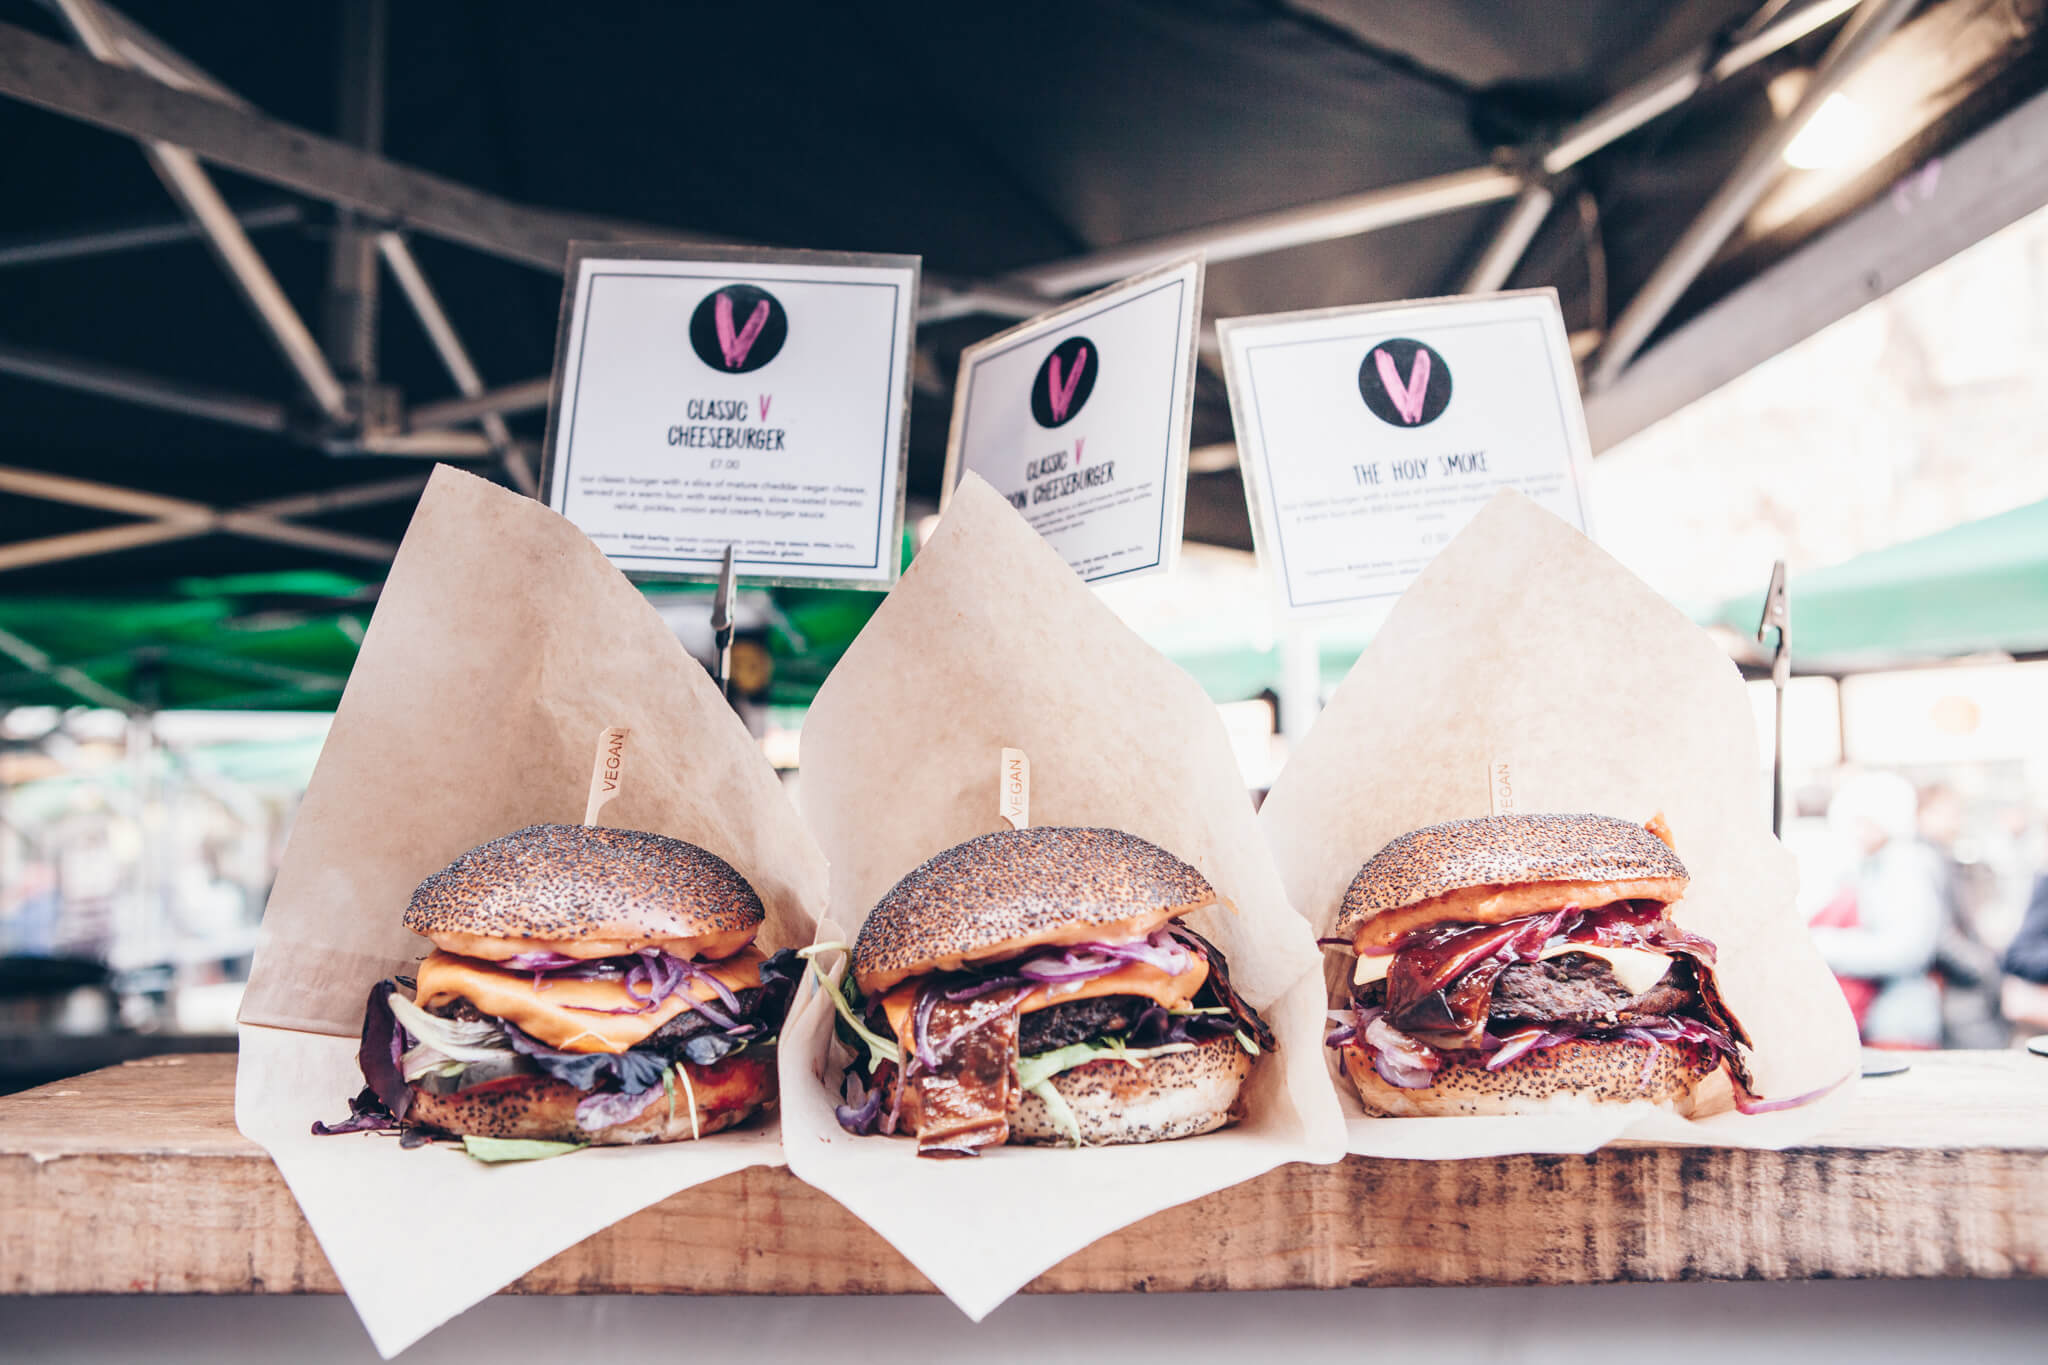 London Food market vegan burgers